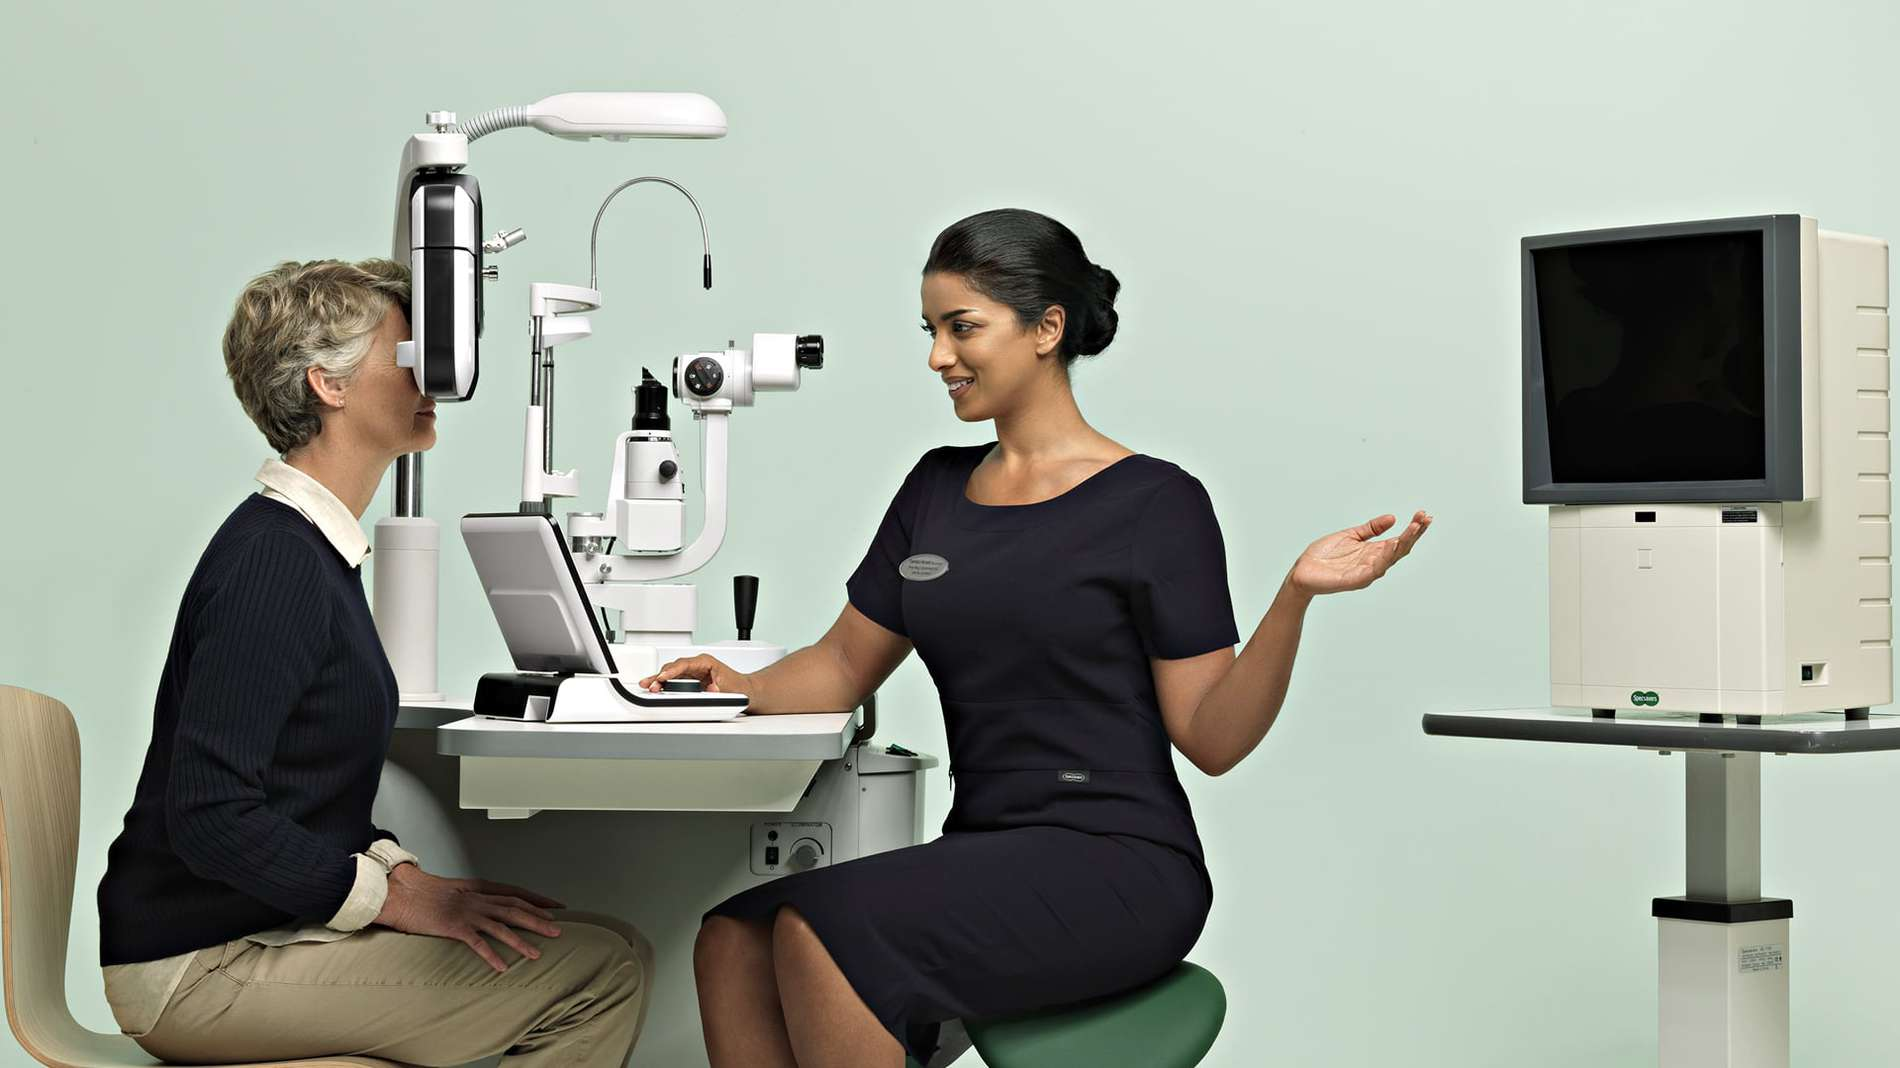 A Specsavers' eye doctor conducting a routine examination of a patient.